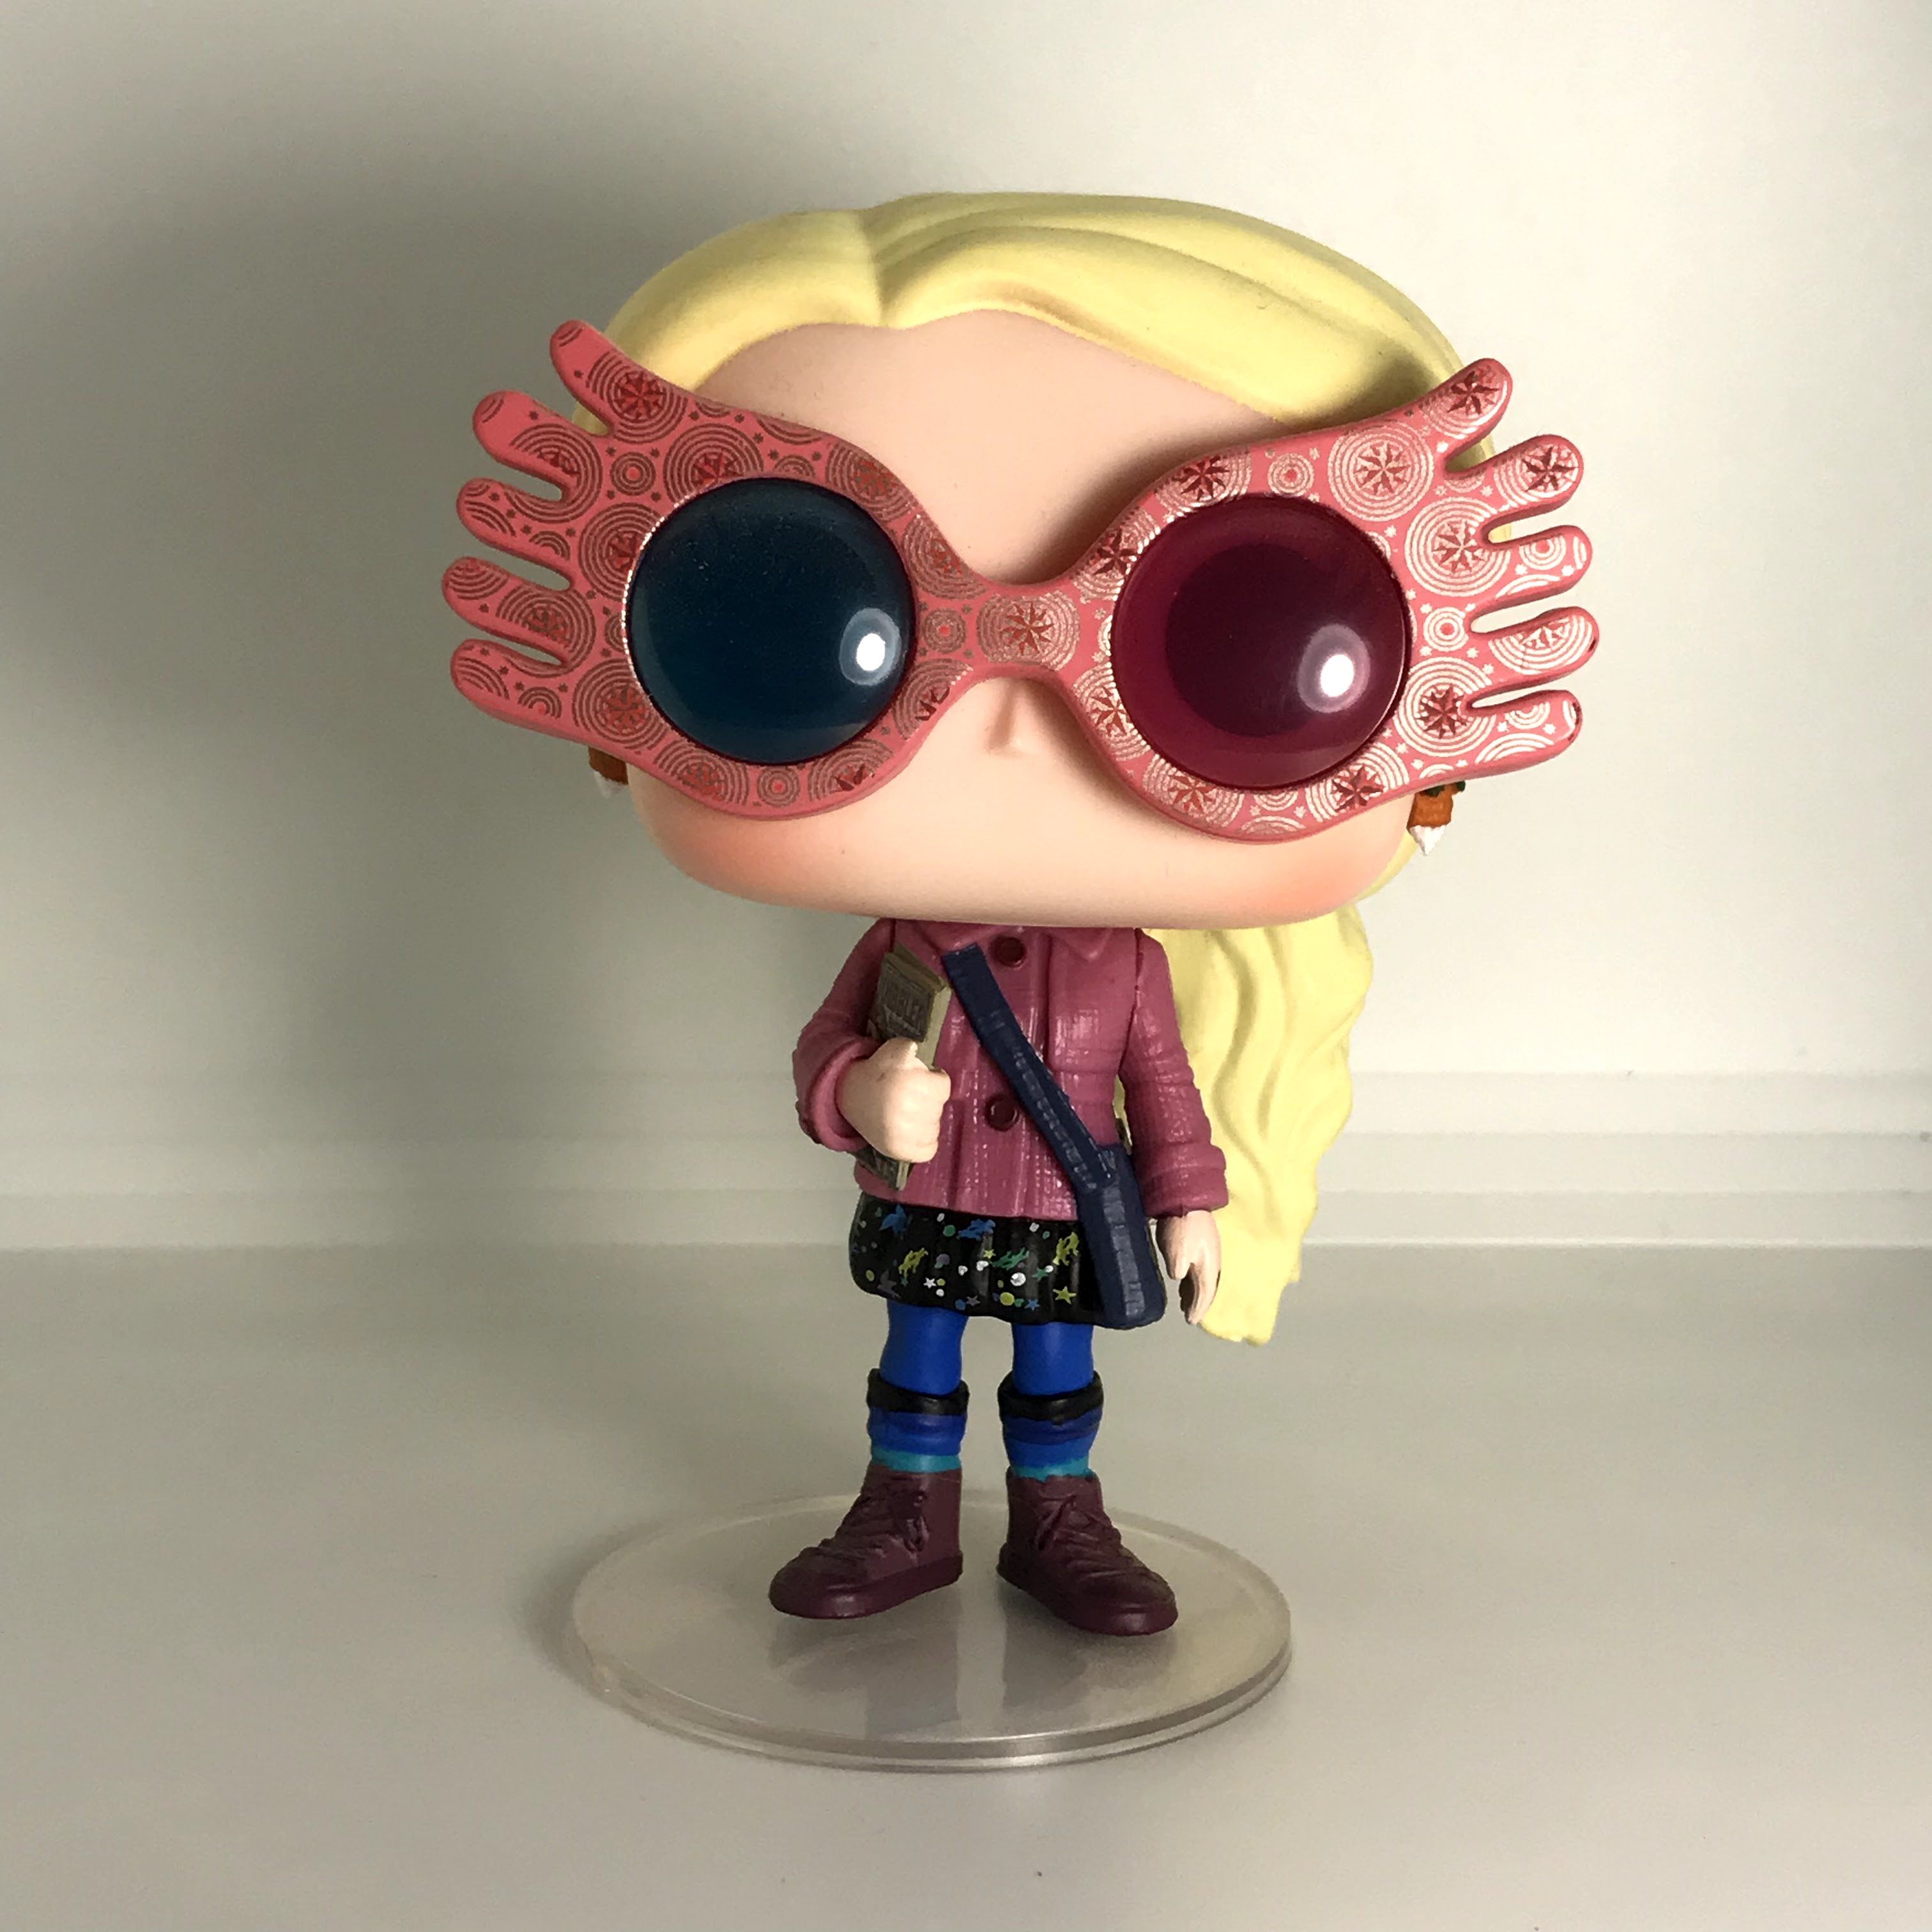 41 Luna Lovegood with Glasses